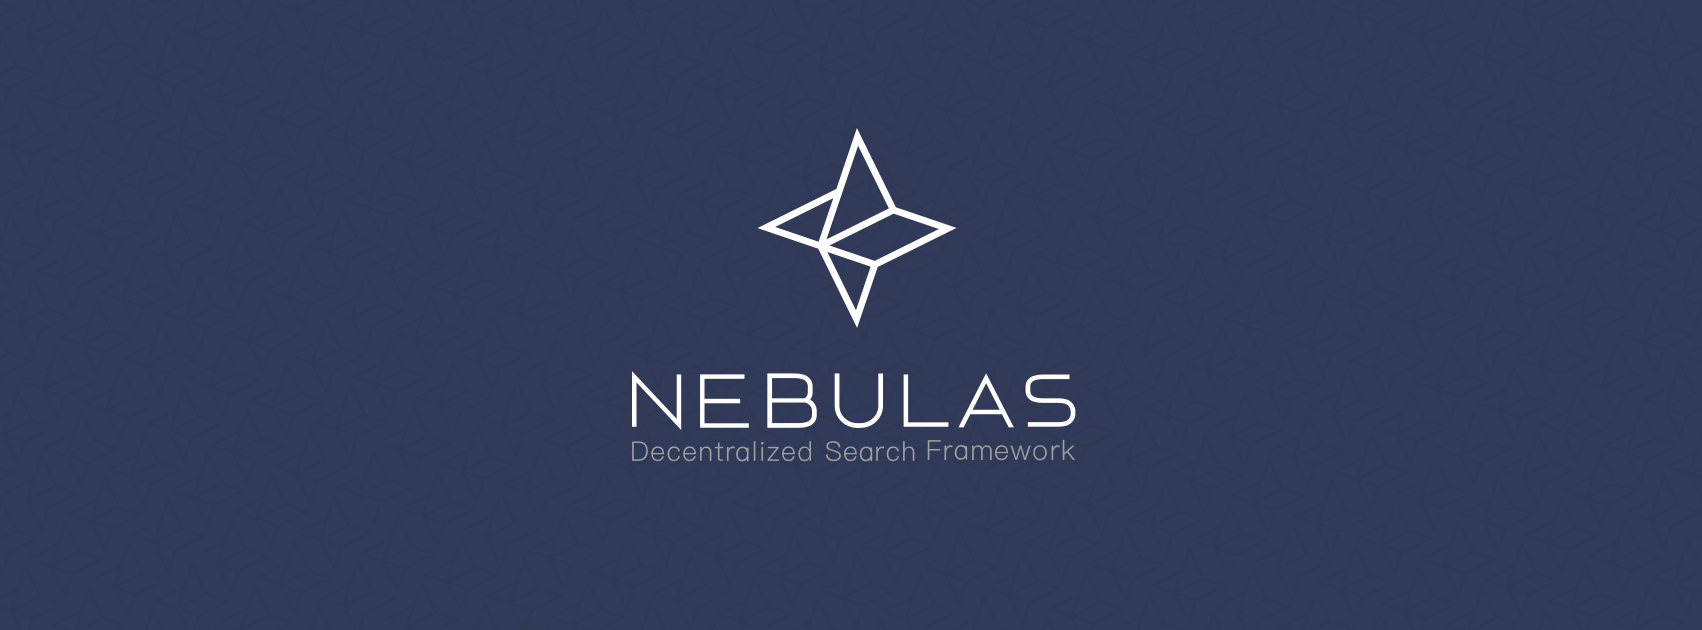 nebulas news latest updates cryptonewsz - 1000×518